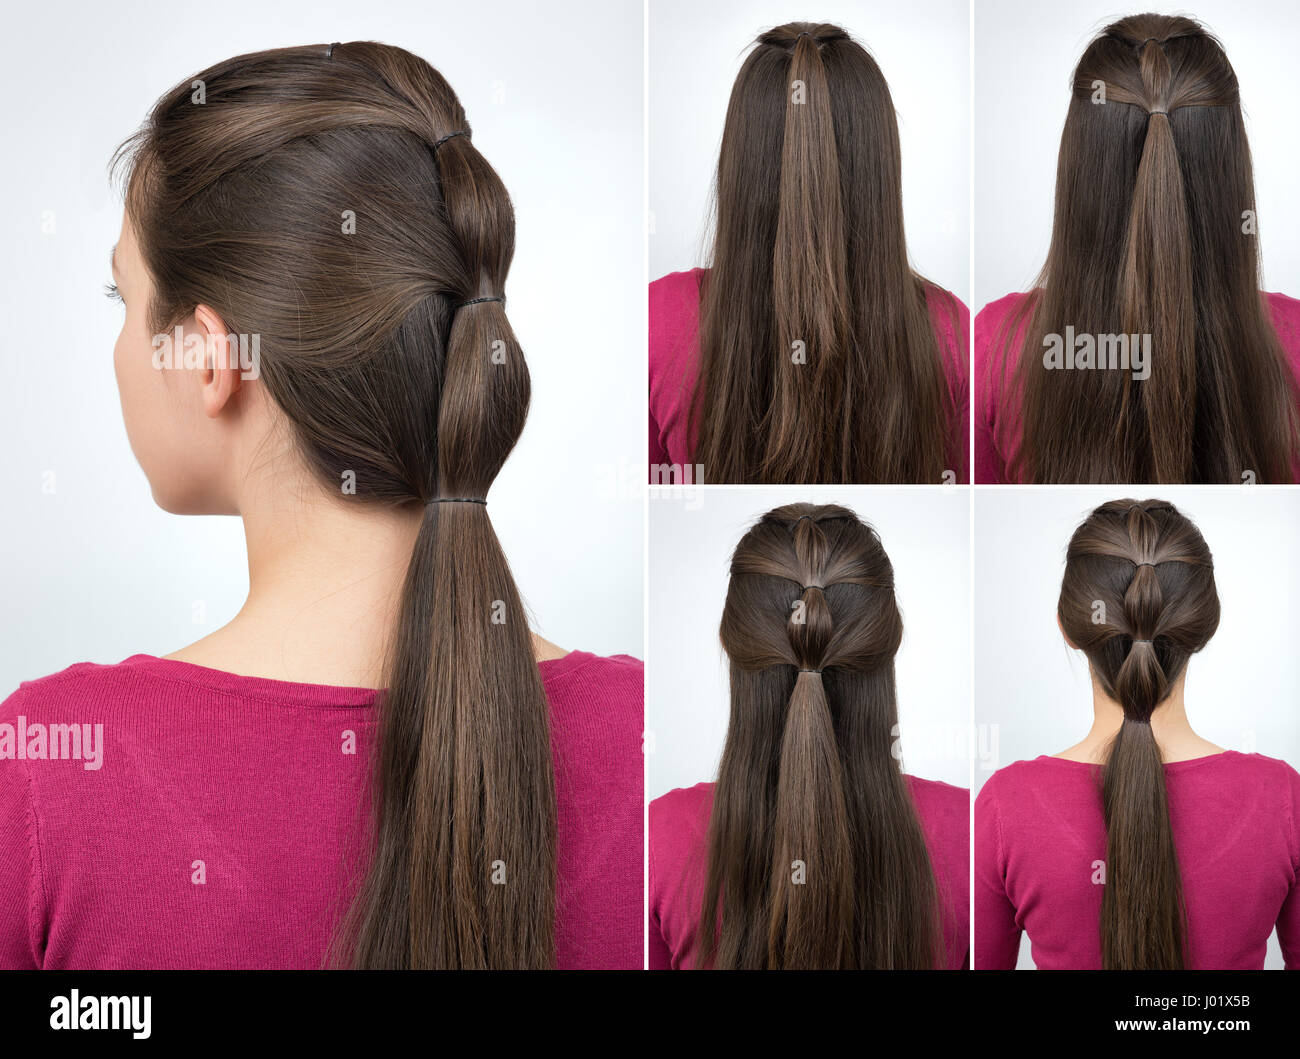 Simple Hairstyle Pony Tail With Scrunchy Tutorial Hair